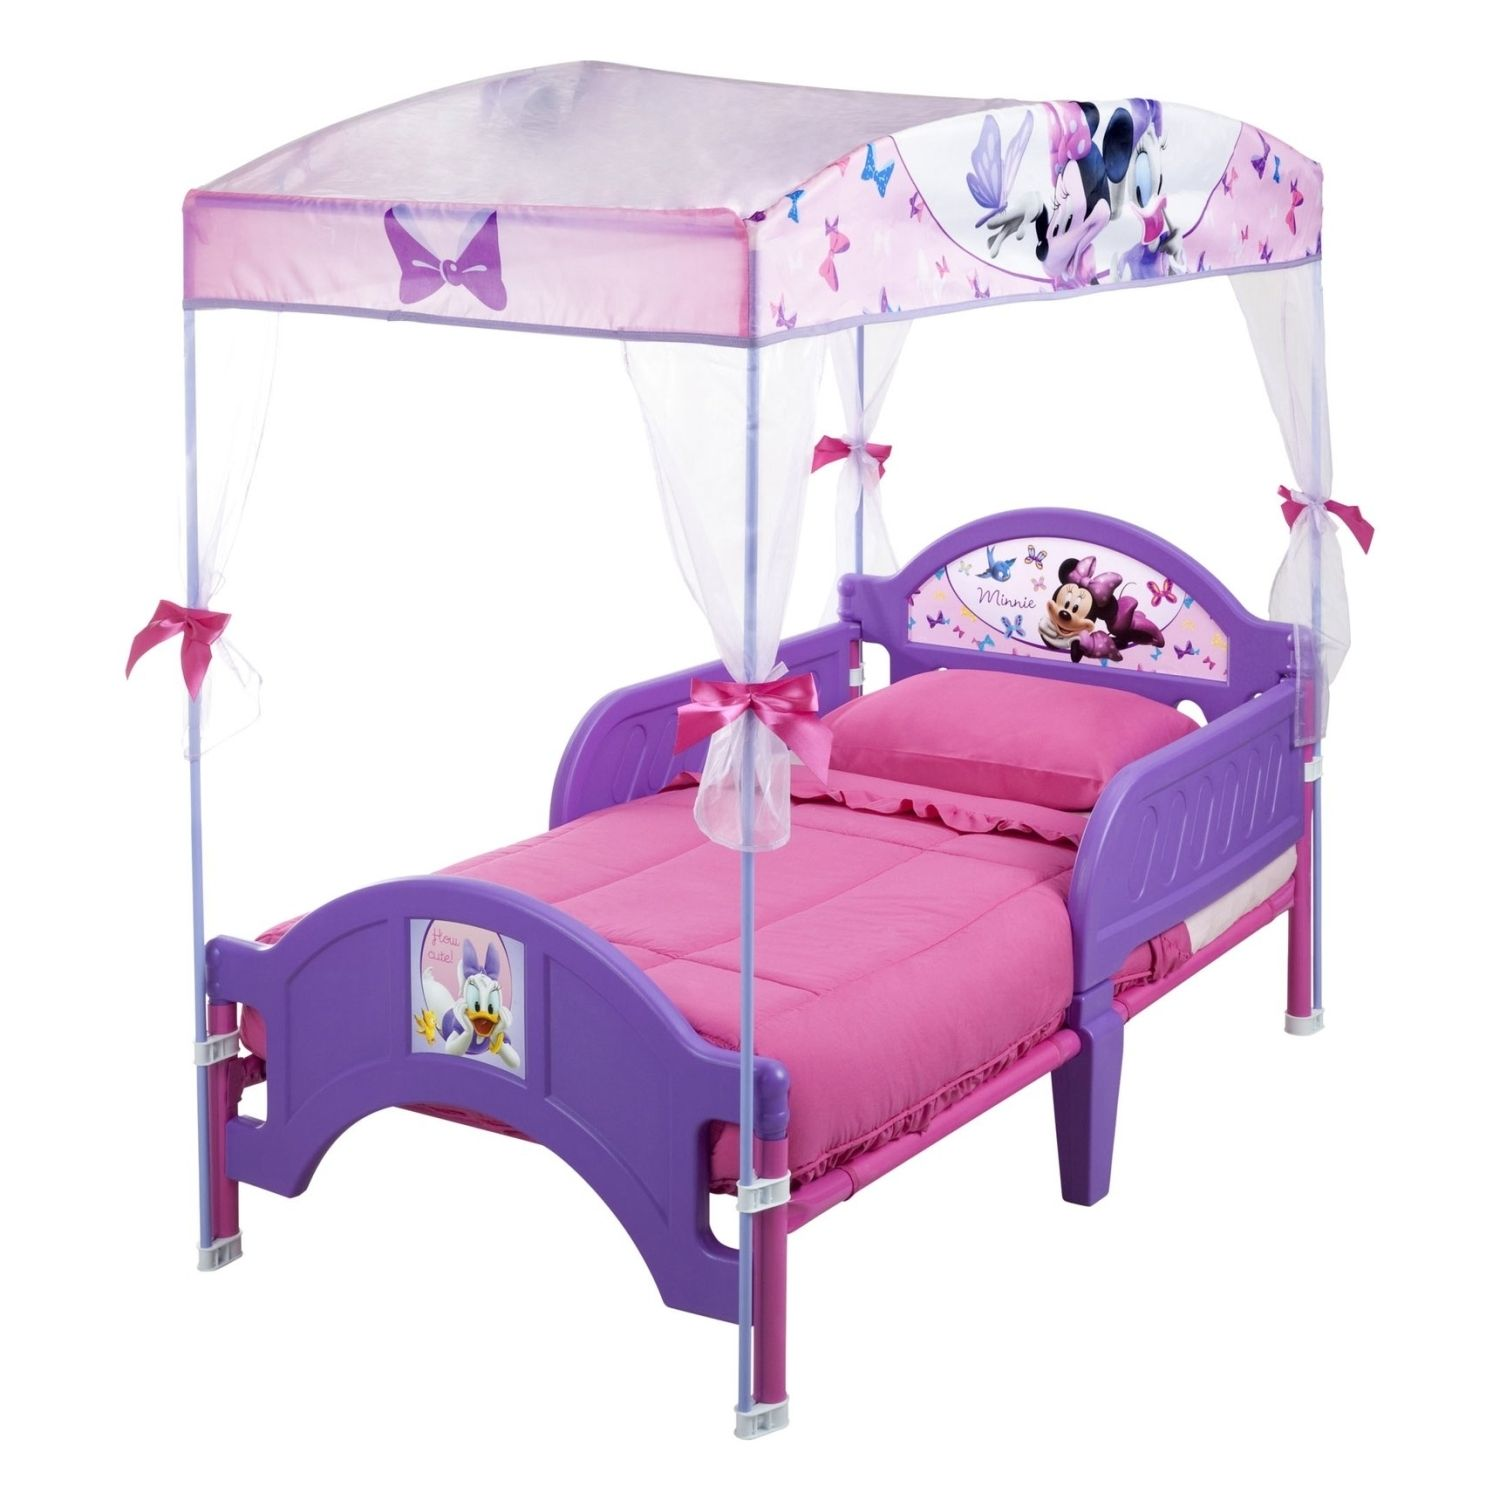 Toddler Minnie Mouse Bedroom Set